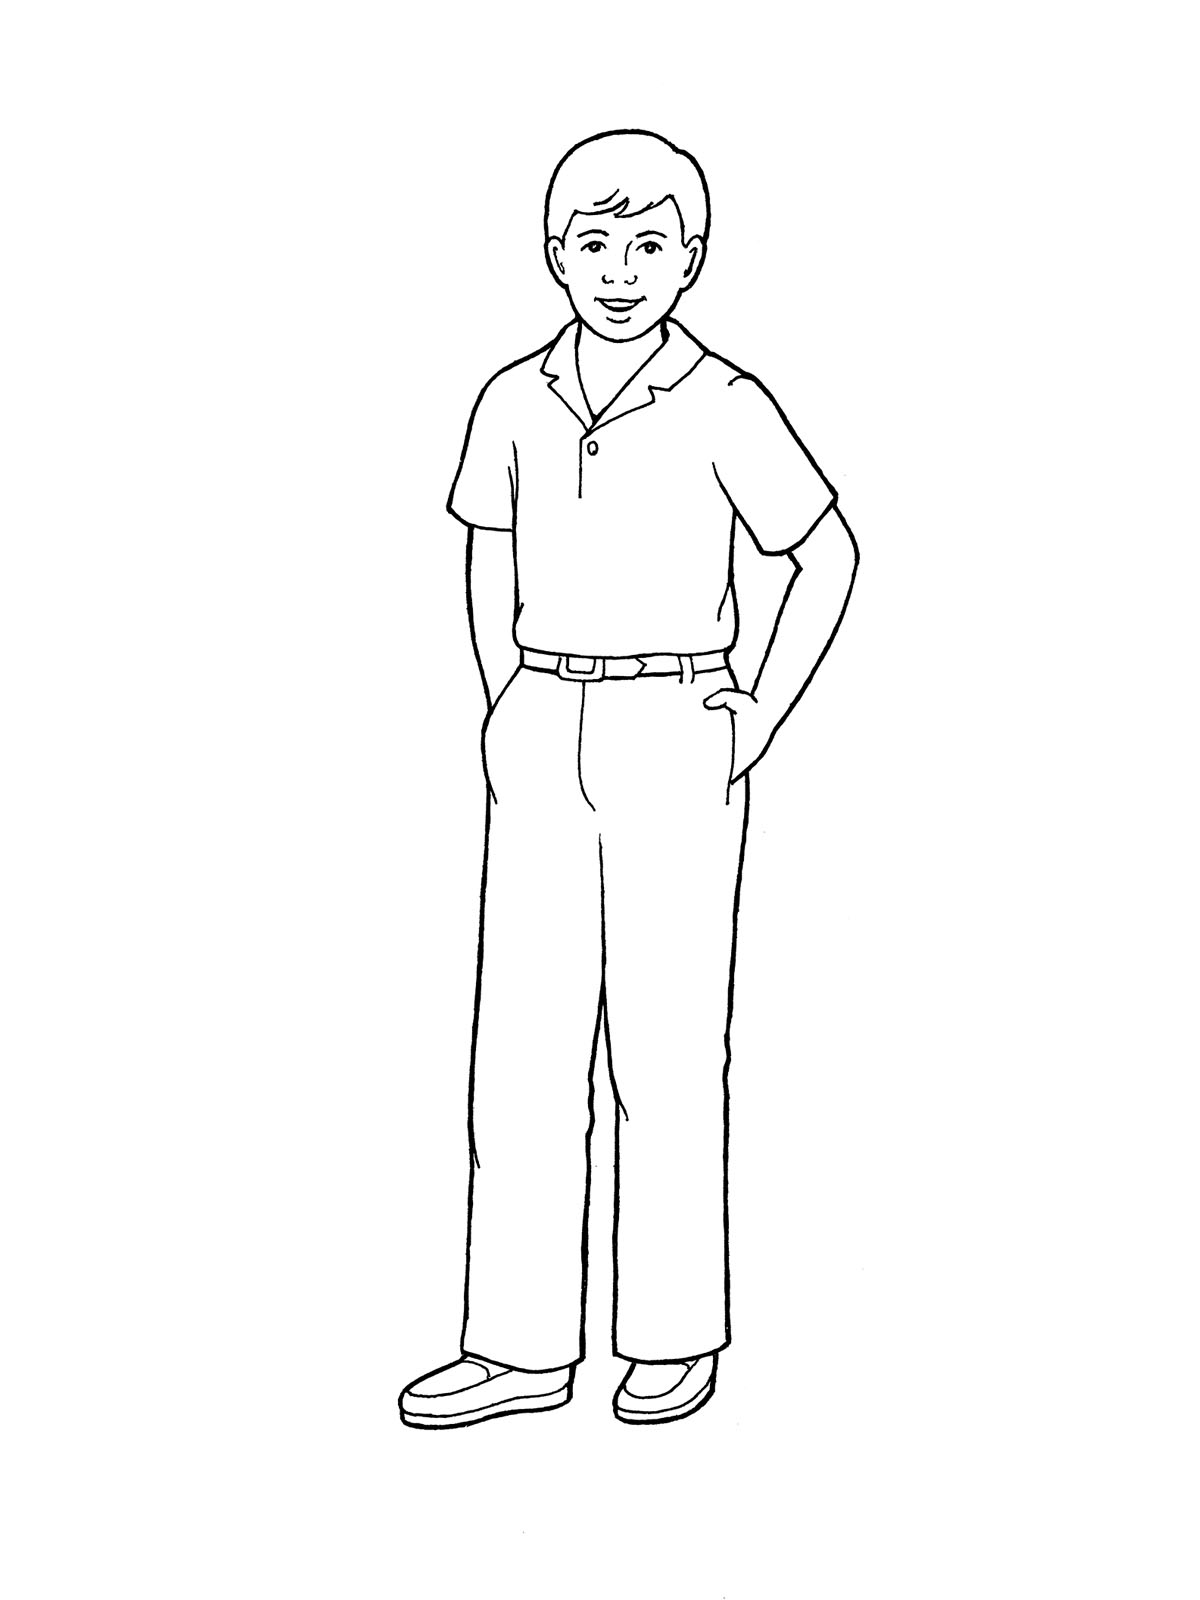 boy standing drawing at getdrawings com free for personal use boy